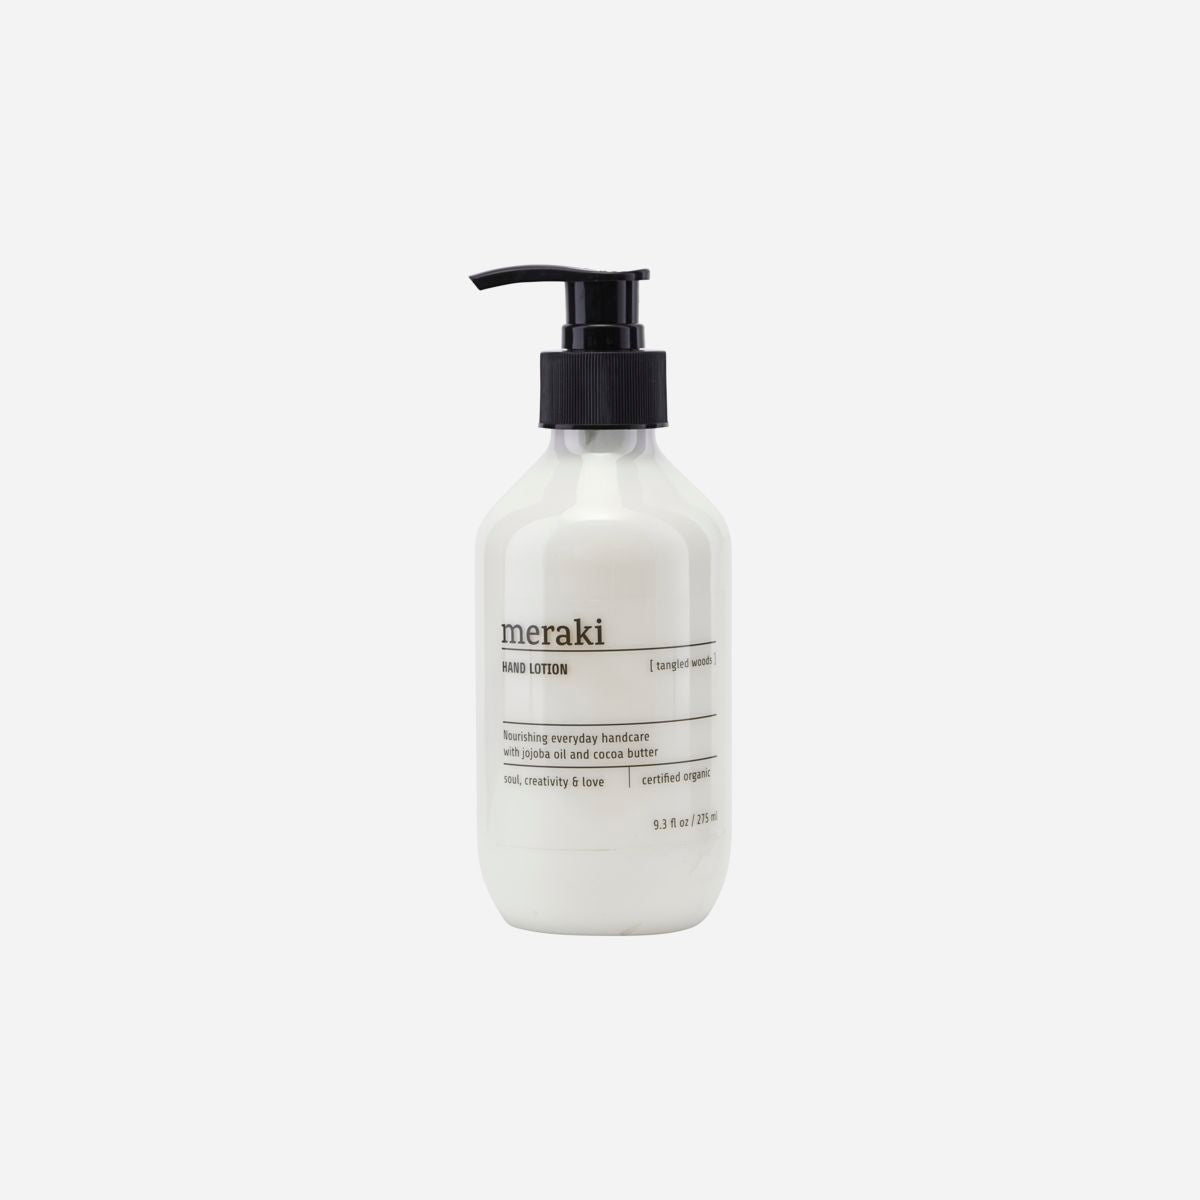 Meraki håndlotion tangled woods 275 ml